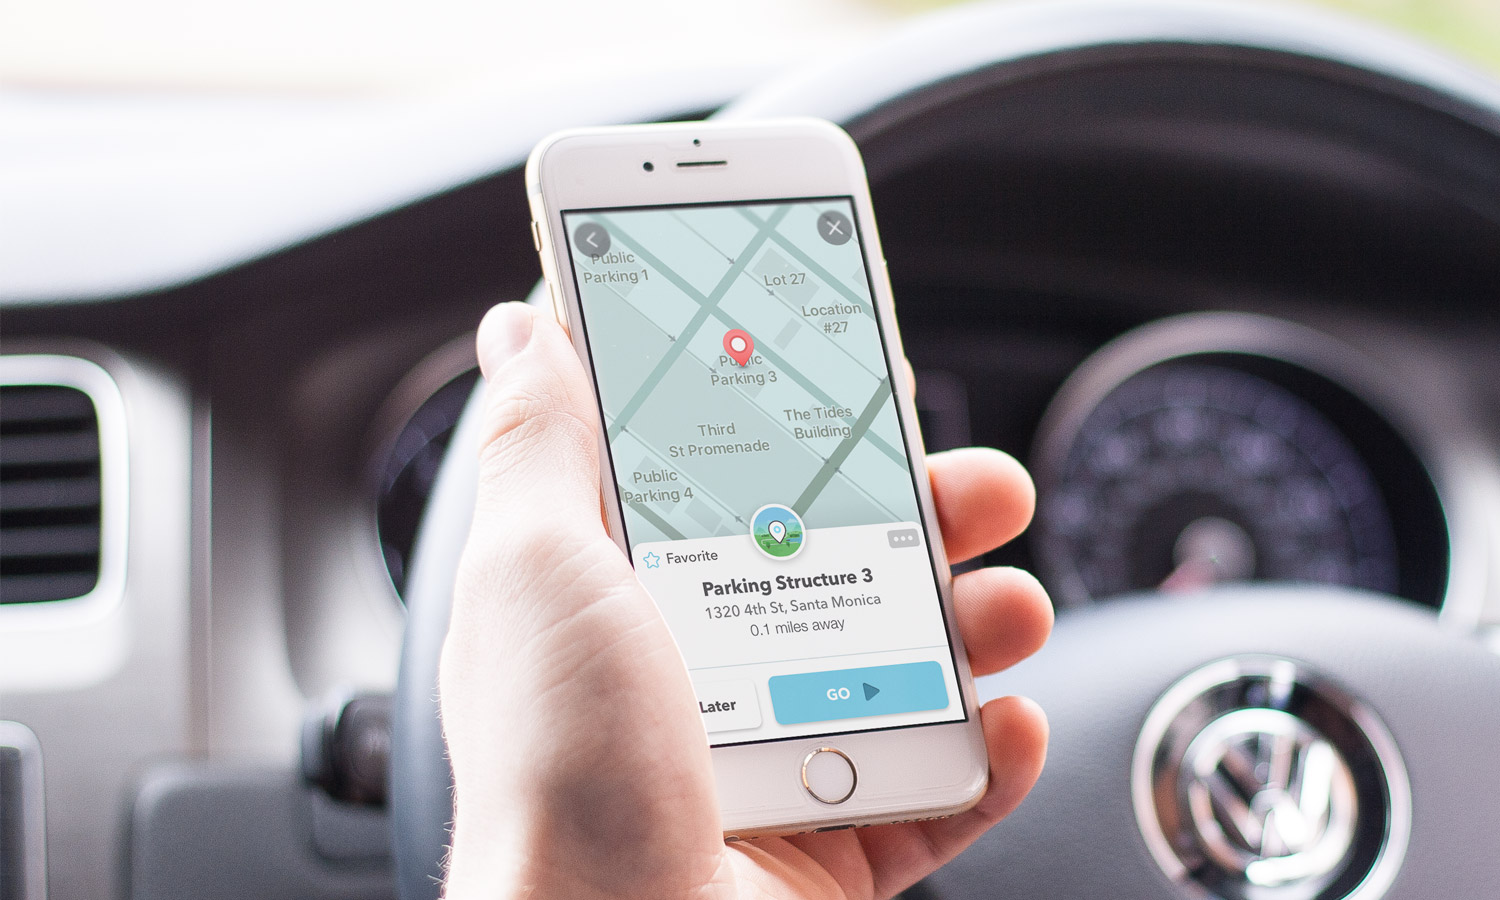 INRIX Selected by Waze to Supply Global Parking Data - INRIX